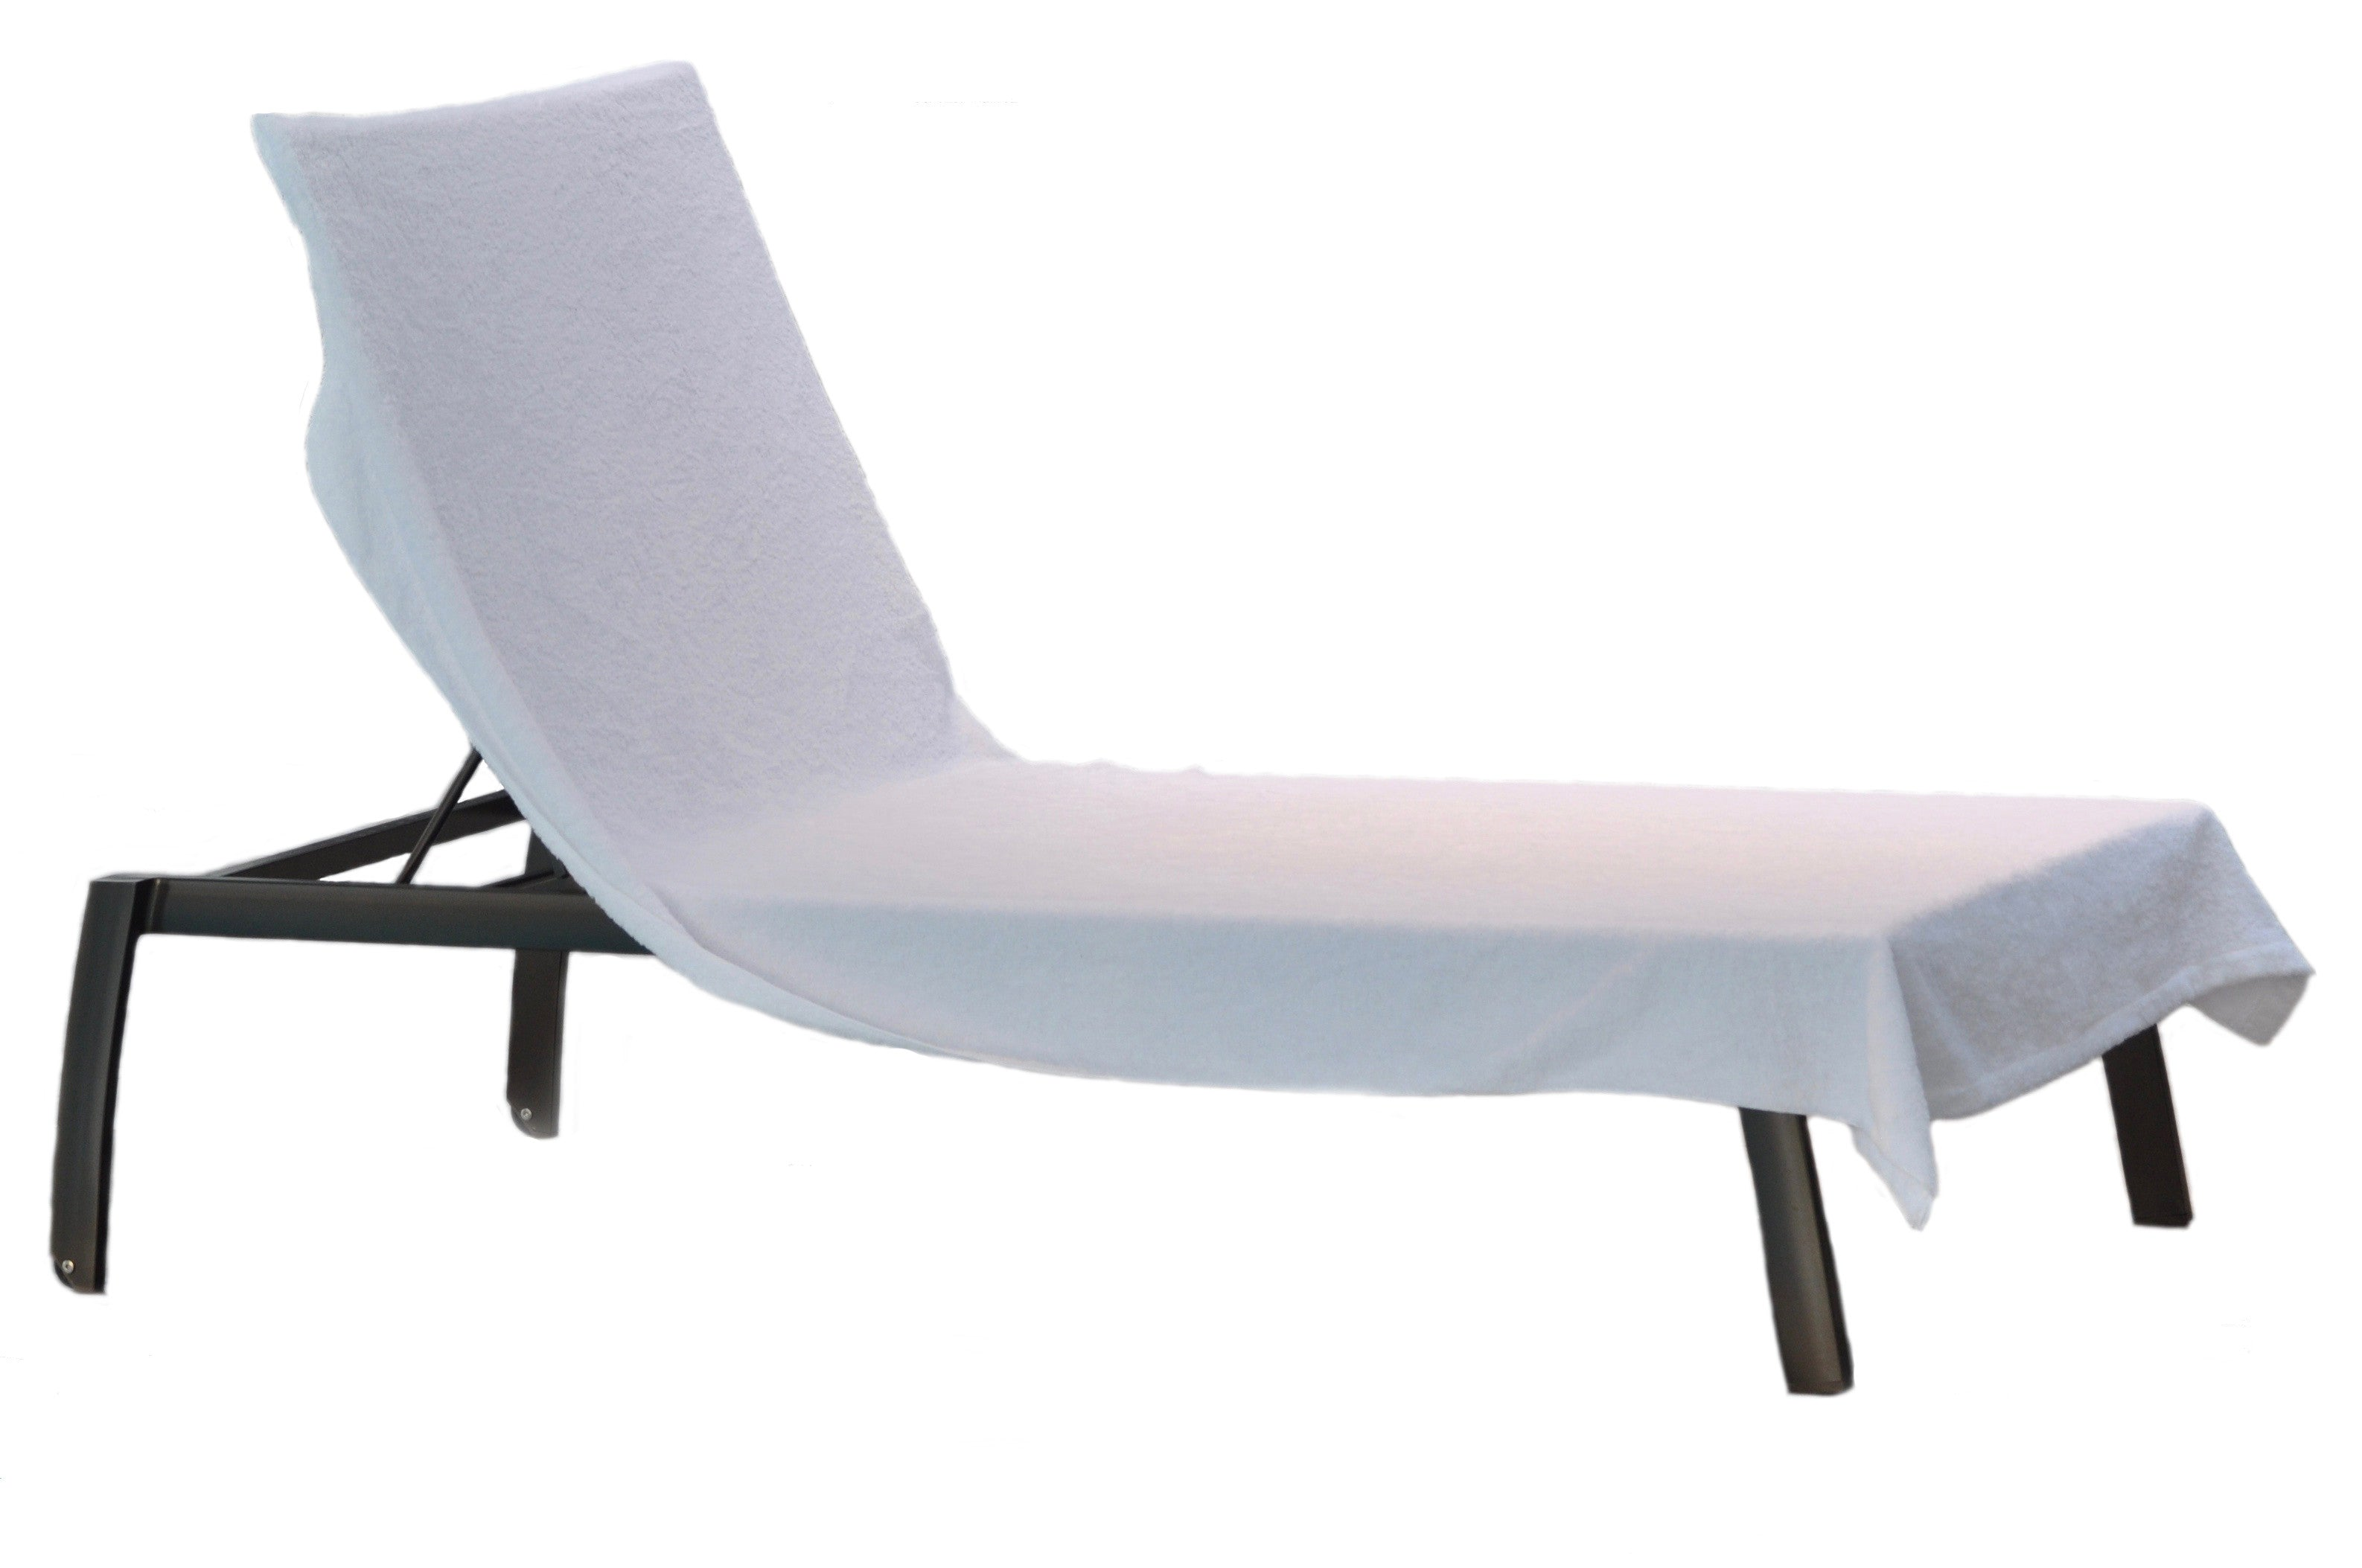 chairs with chaise on cushion indoor white com covers for impressive lounge chair tumbeela cover